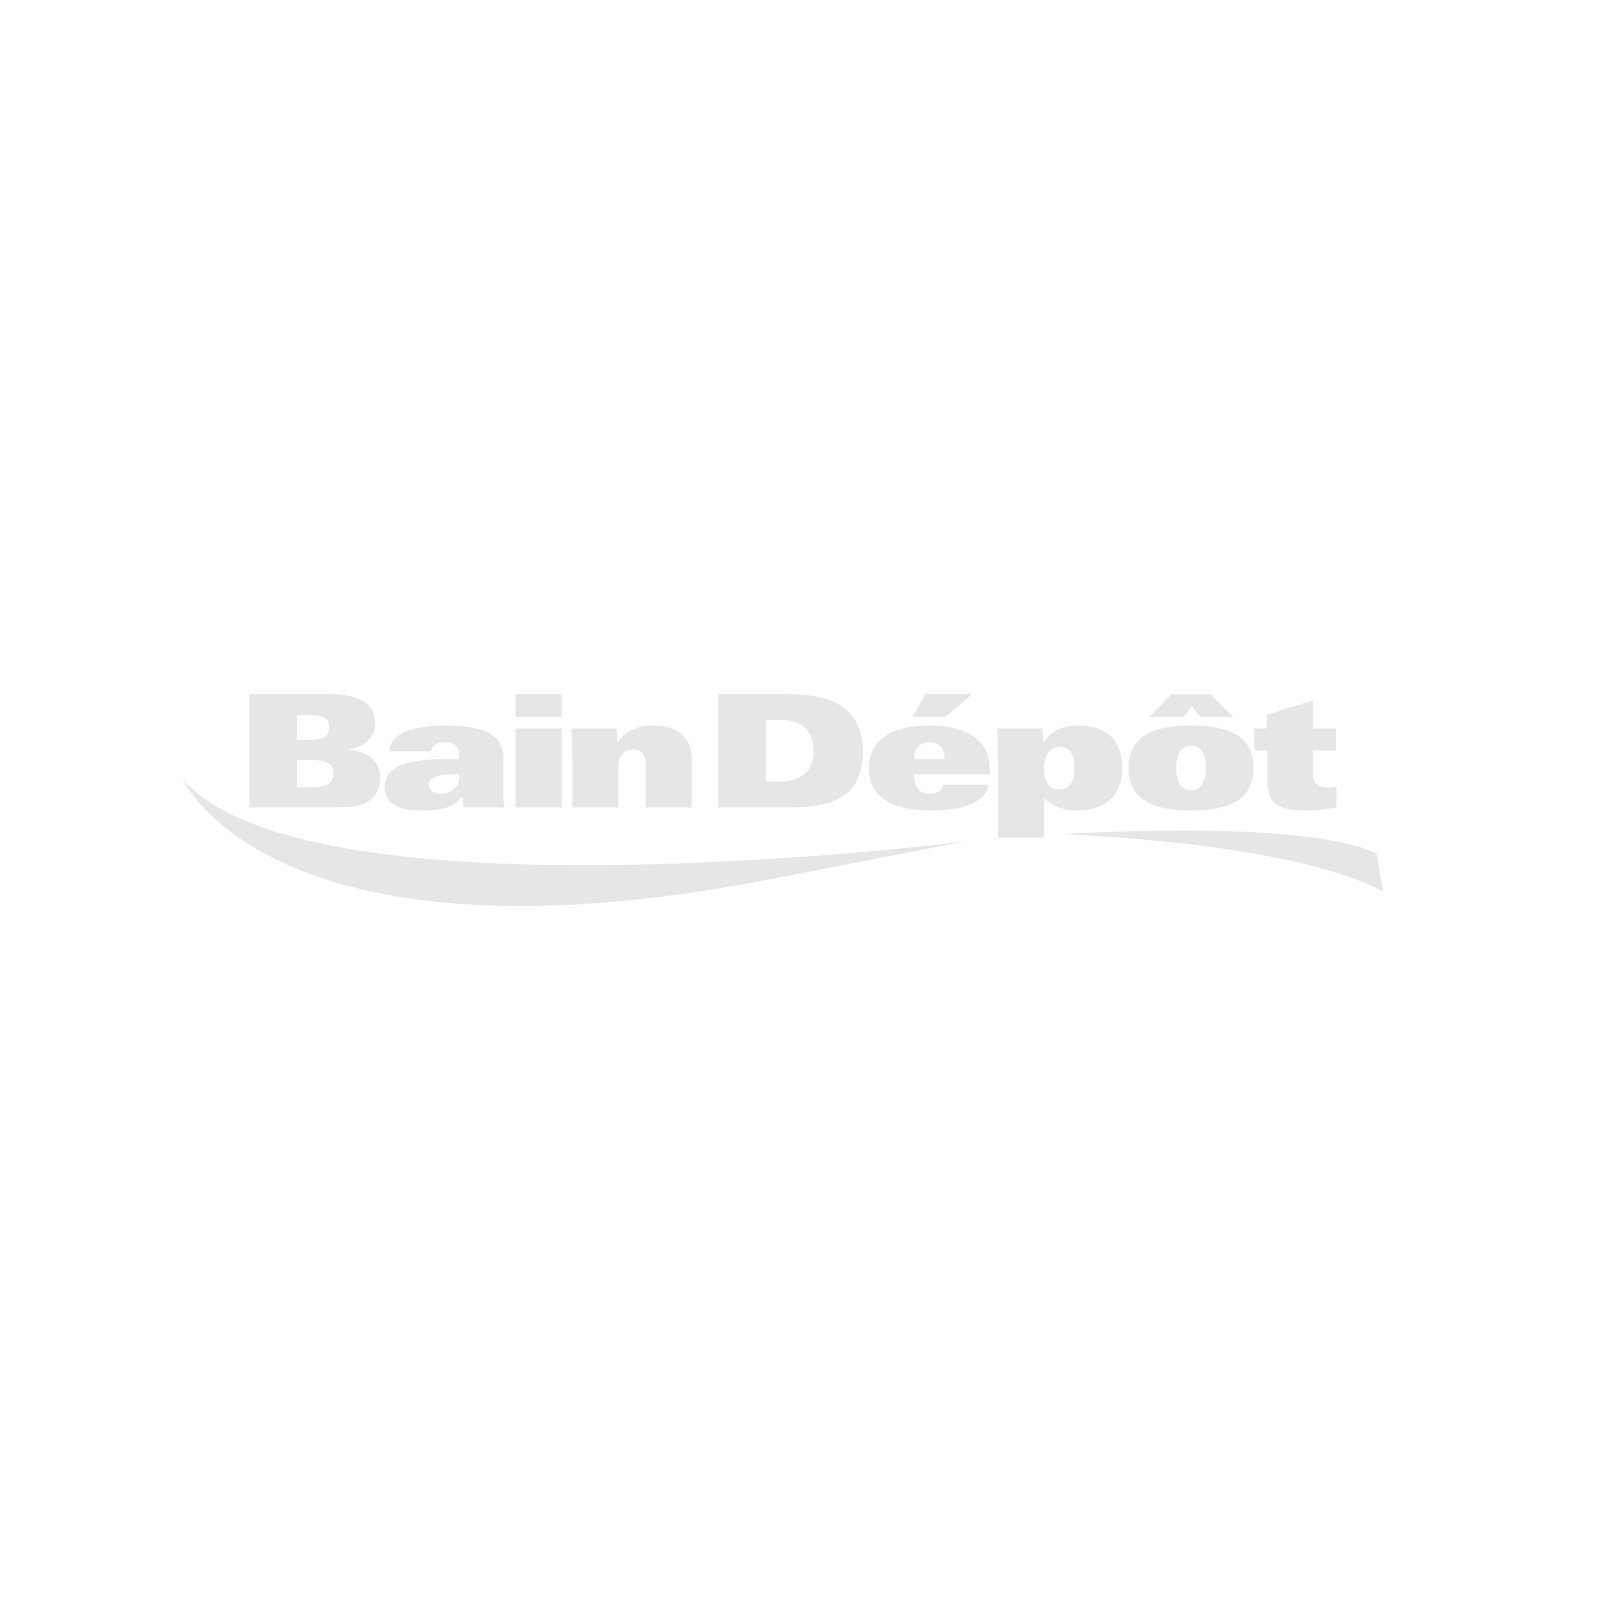 AlinO-Gard Waterproof Membrane -  1 m x 25 m (270 sq. ft.)